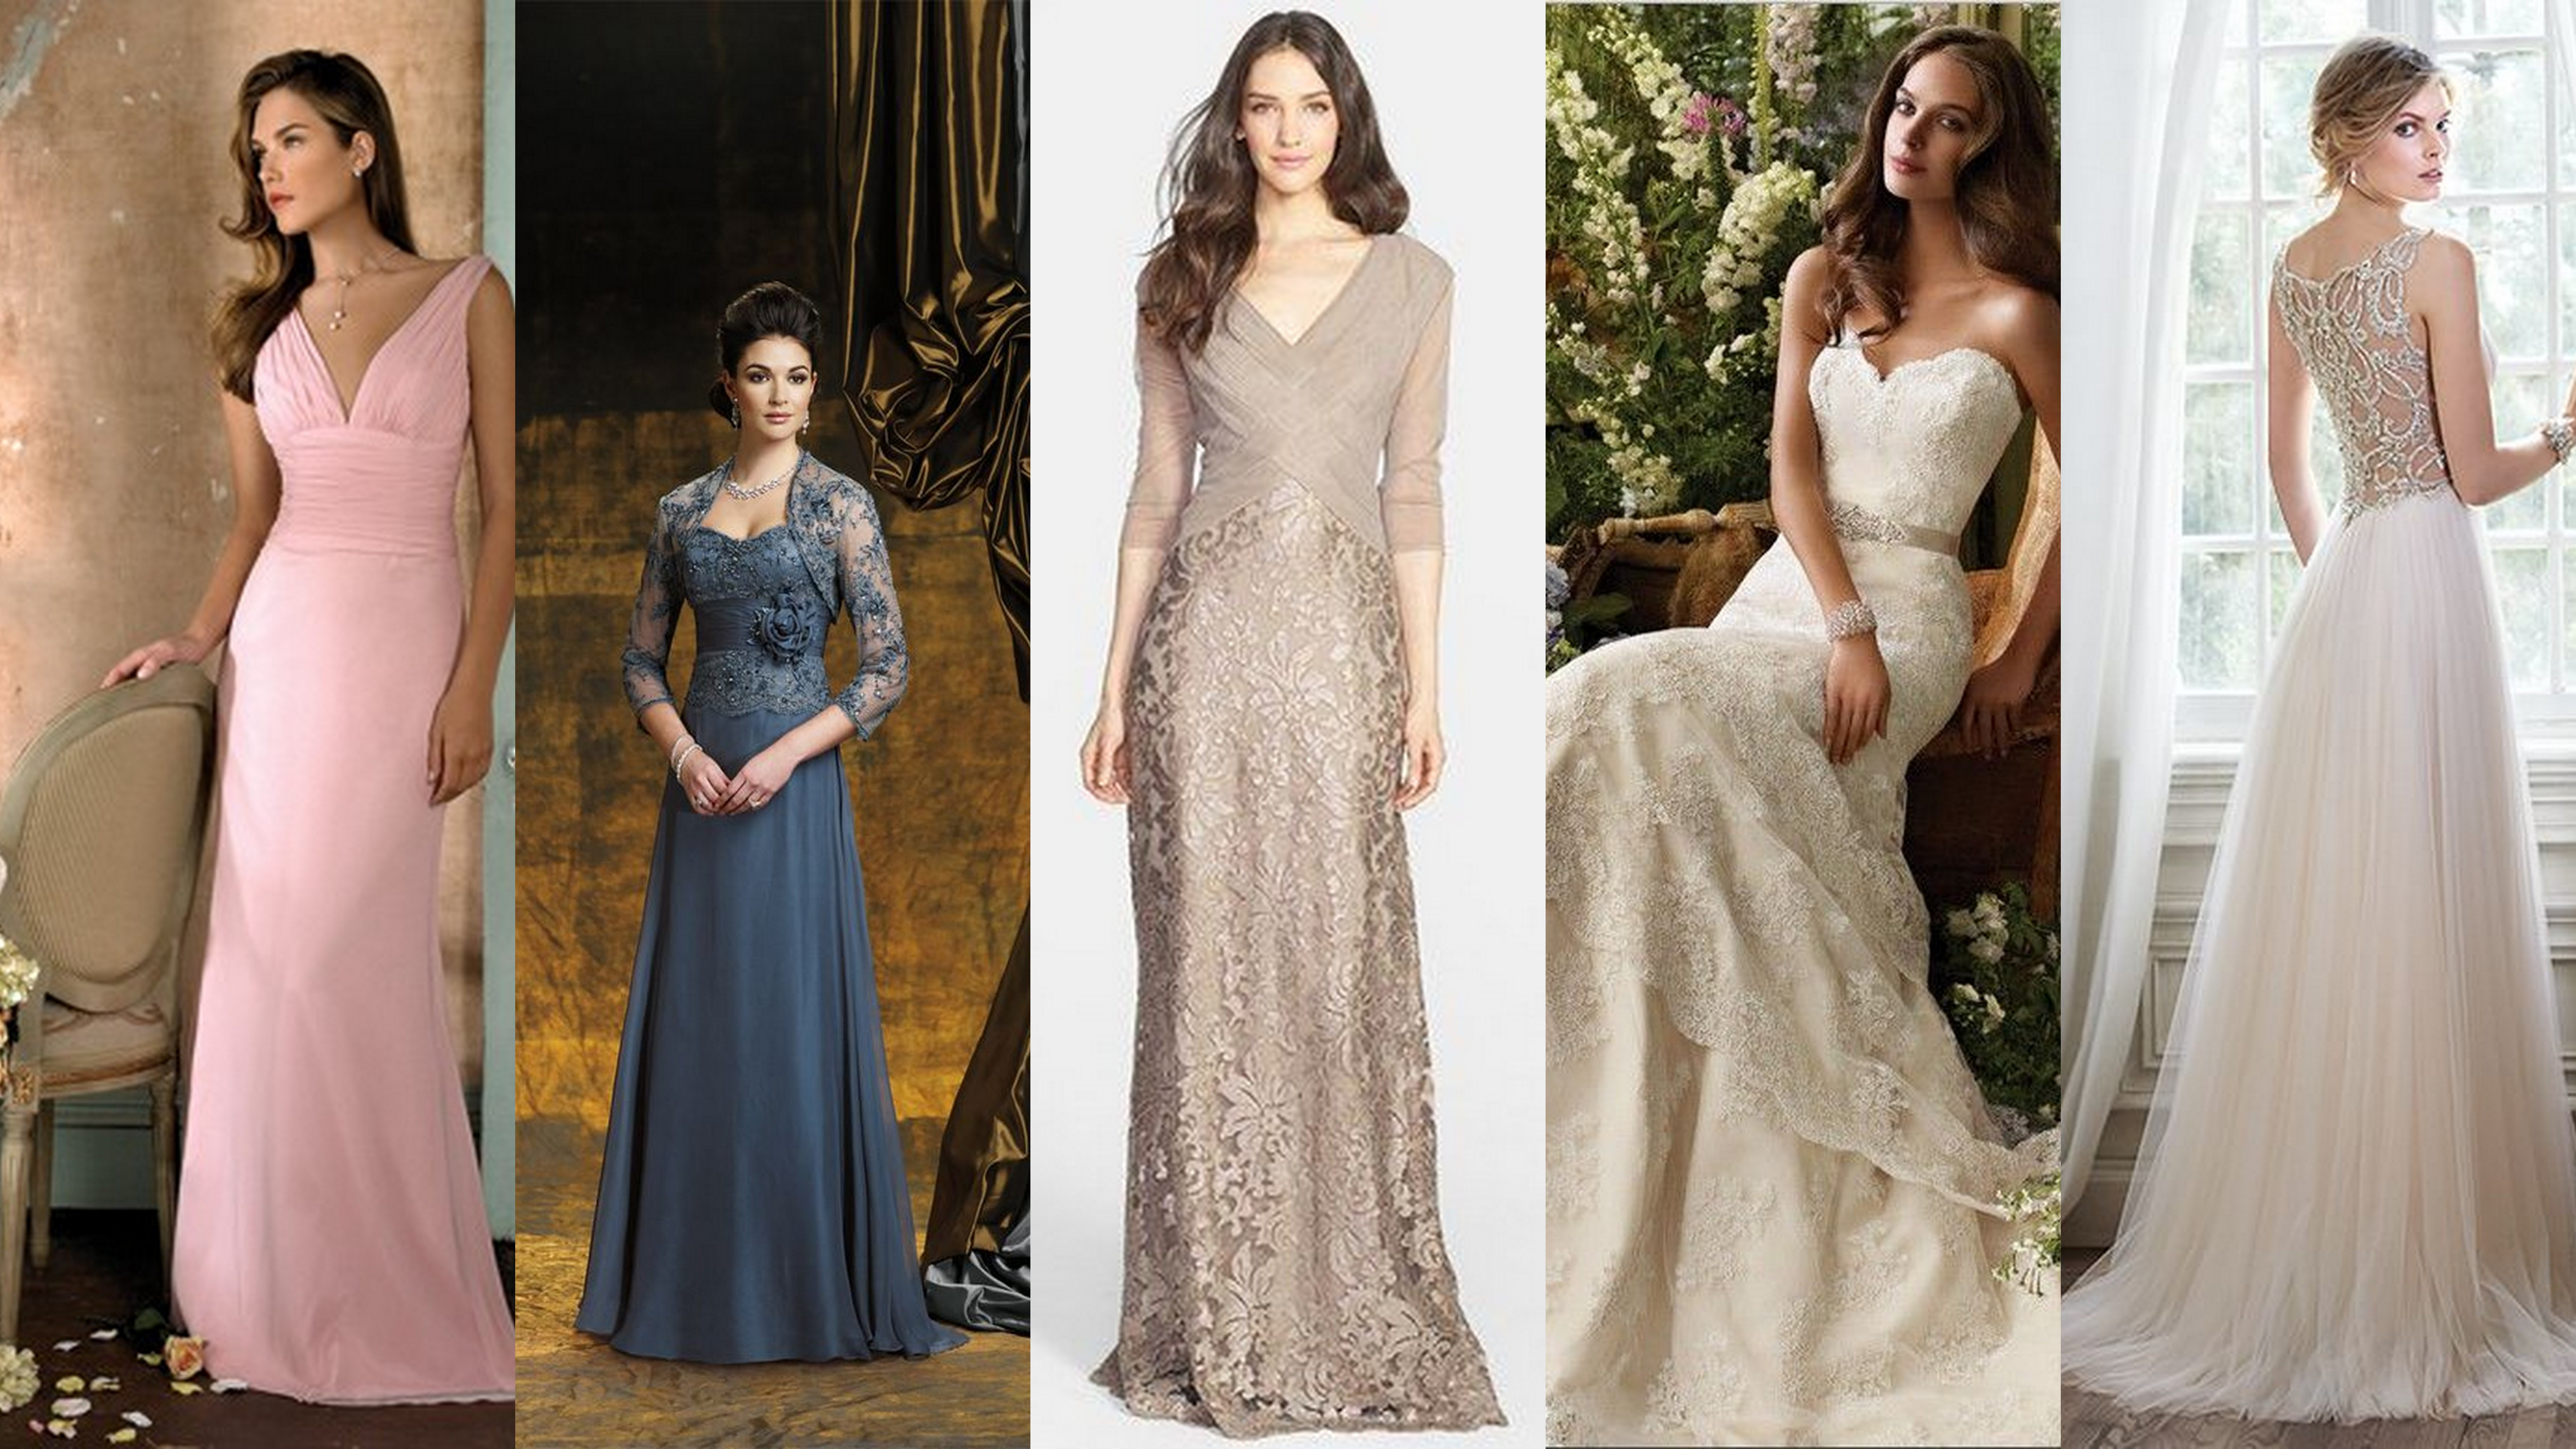 Wedding Gown For Petite Bride: Top 5 Tips To Find Ideal Wedding Dress For Your Body Type